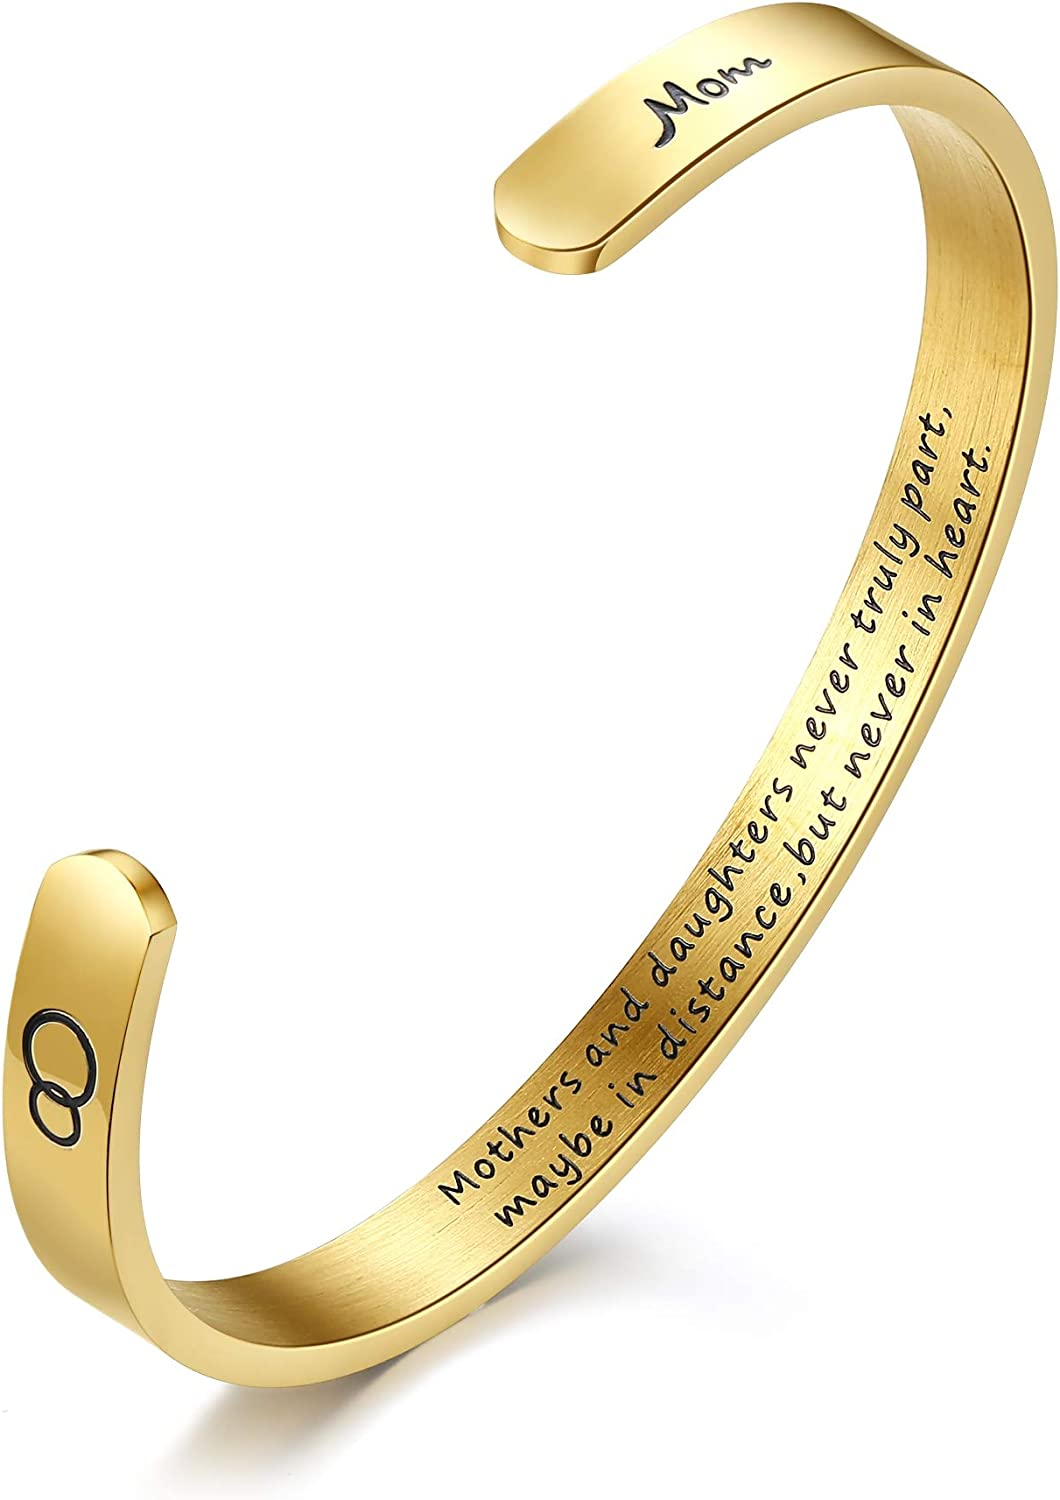 NEWNOVE Inspirational Gifts for Women Straighten Your Crown Bracelet Engraved Mantra Cuff Bangle Birthday Jewelry Gift for Her